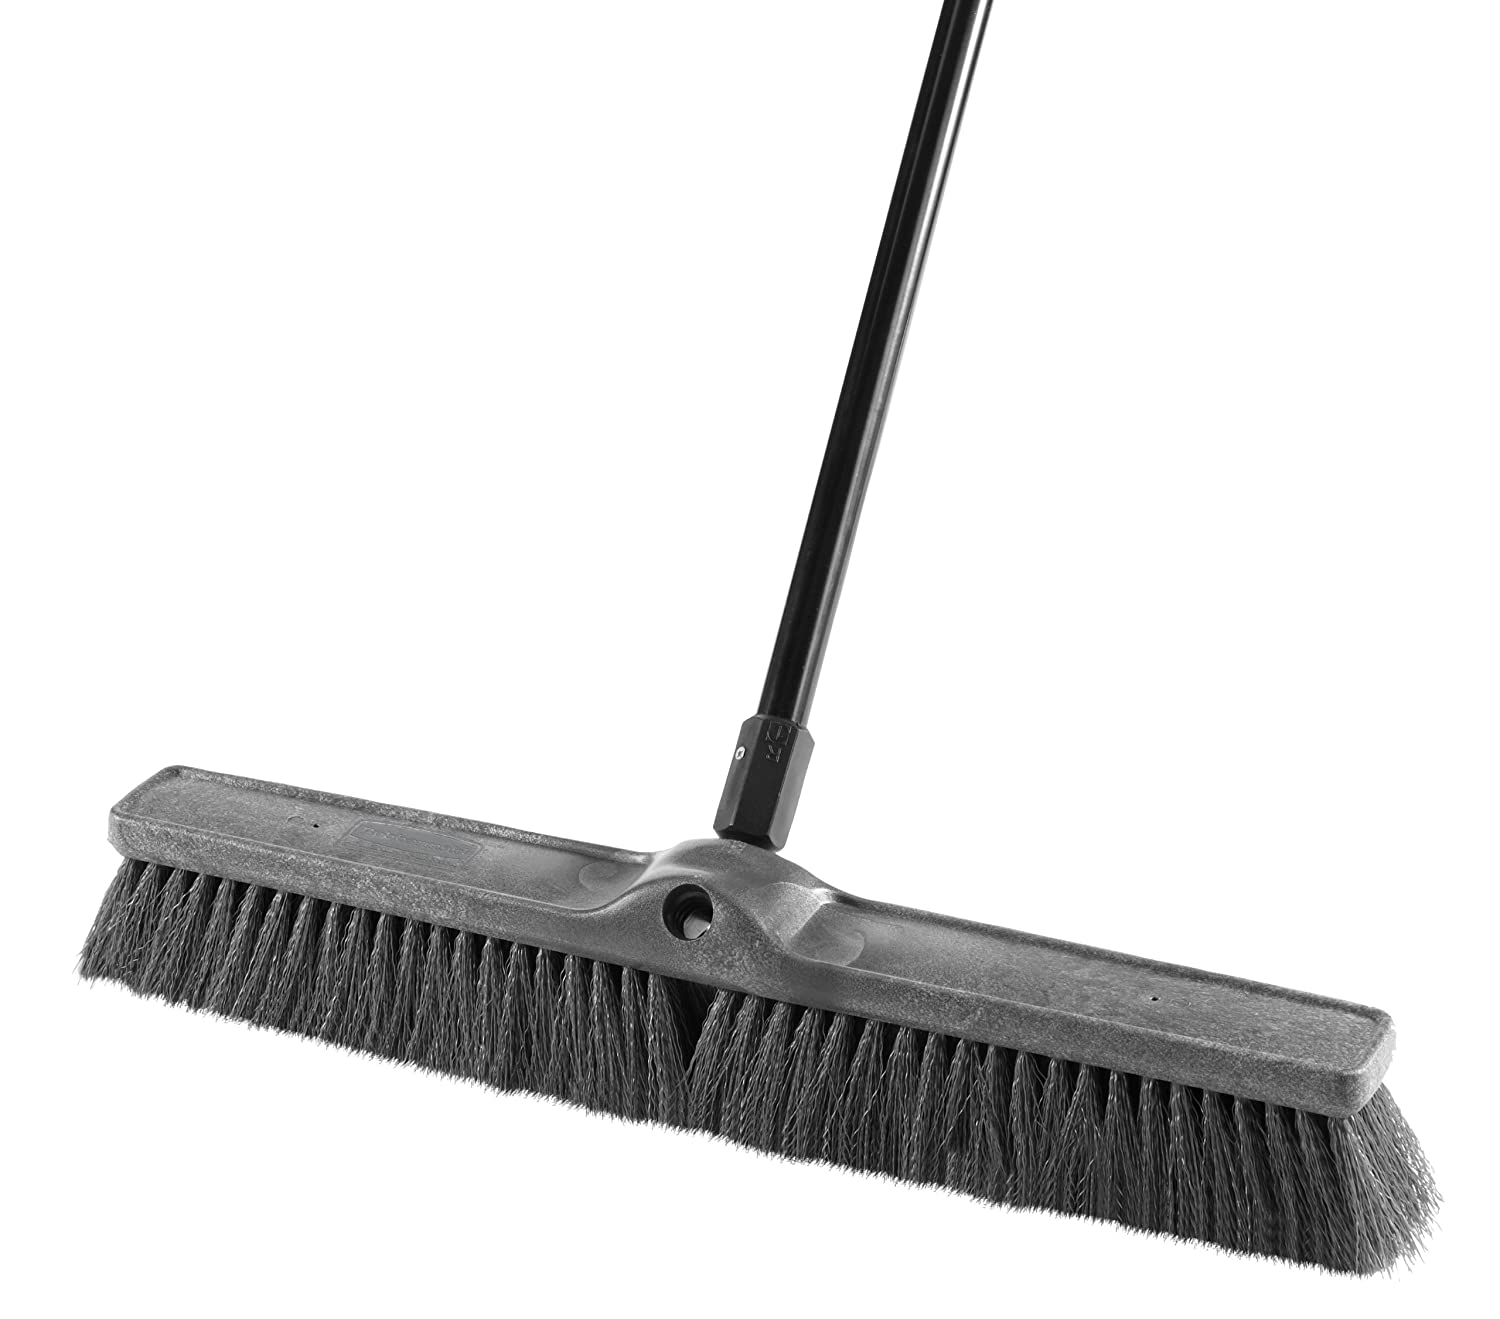 Rubbermaid Commercial 1861211 Executive Series 24-inch Push Broom, Multi-Surface Medium-Duty Sweep